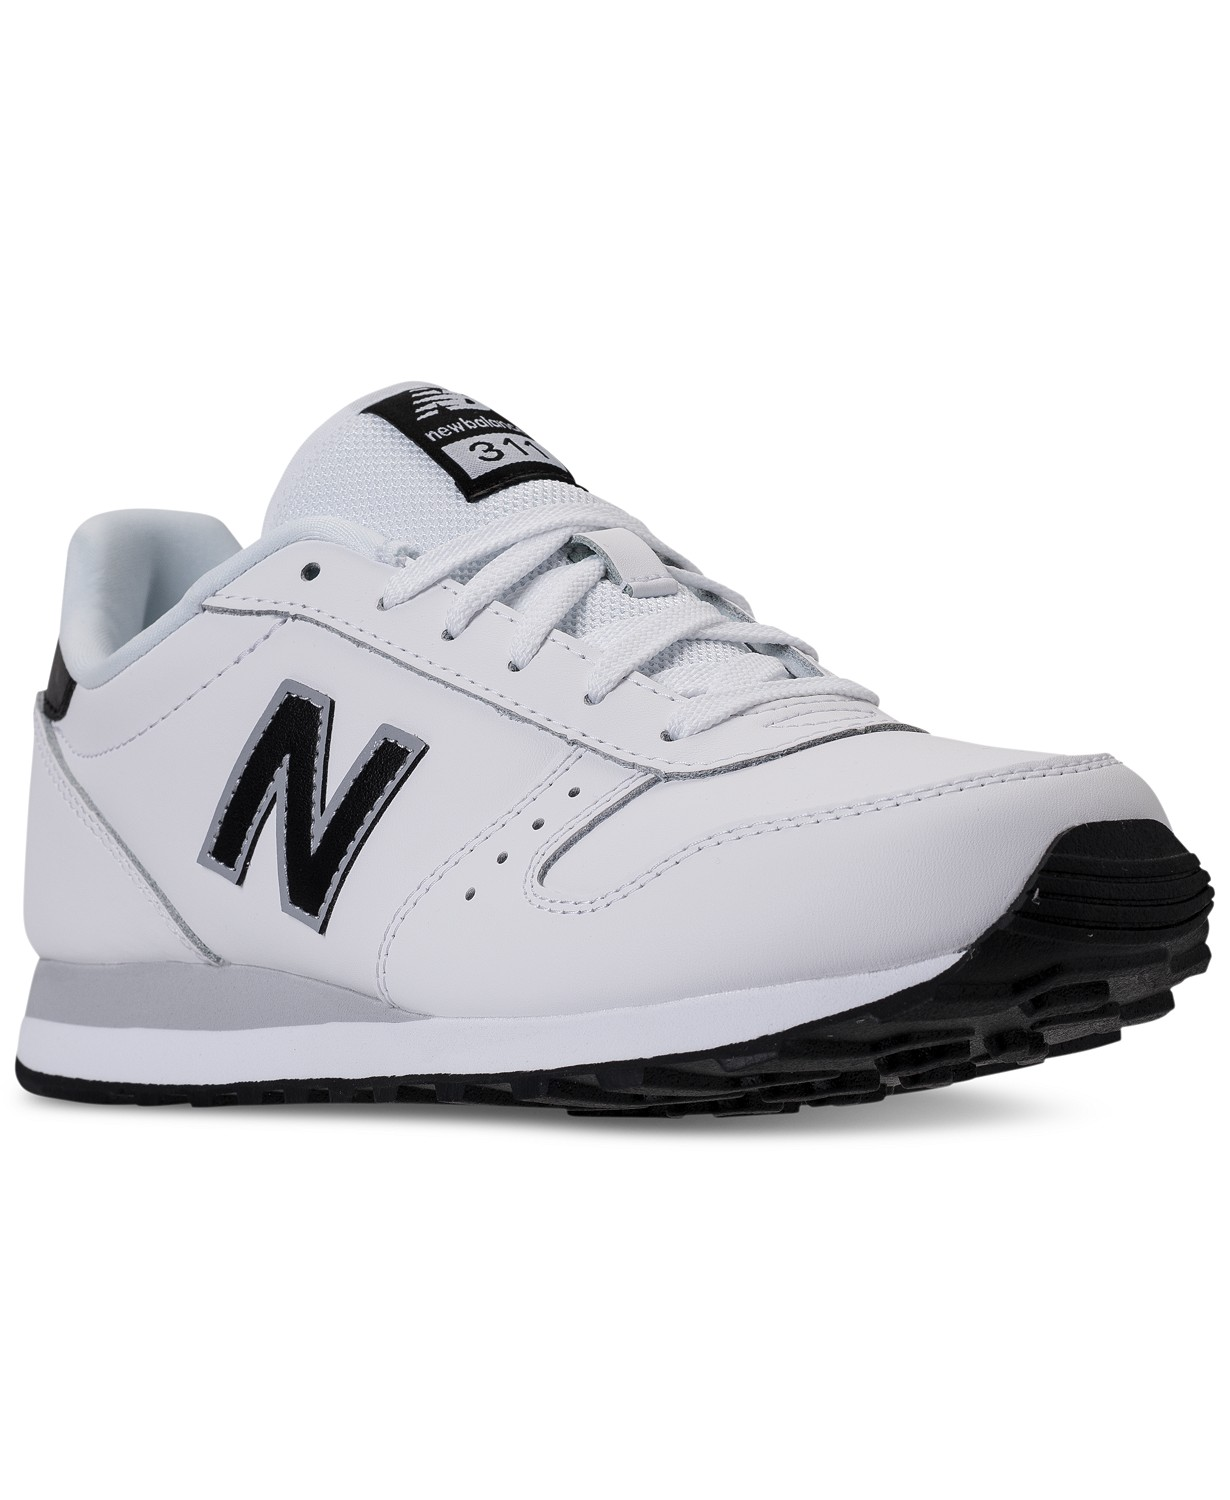 New Balance Men's 311 Leather Casual Sneakers (White/Black)